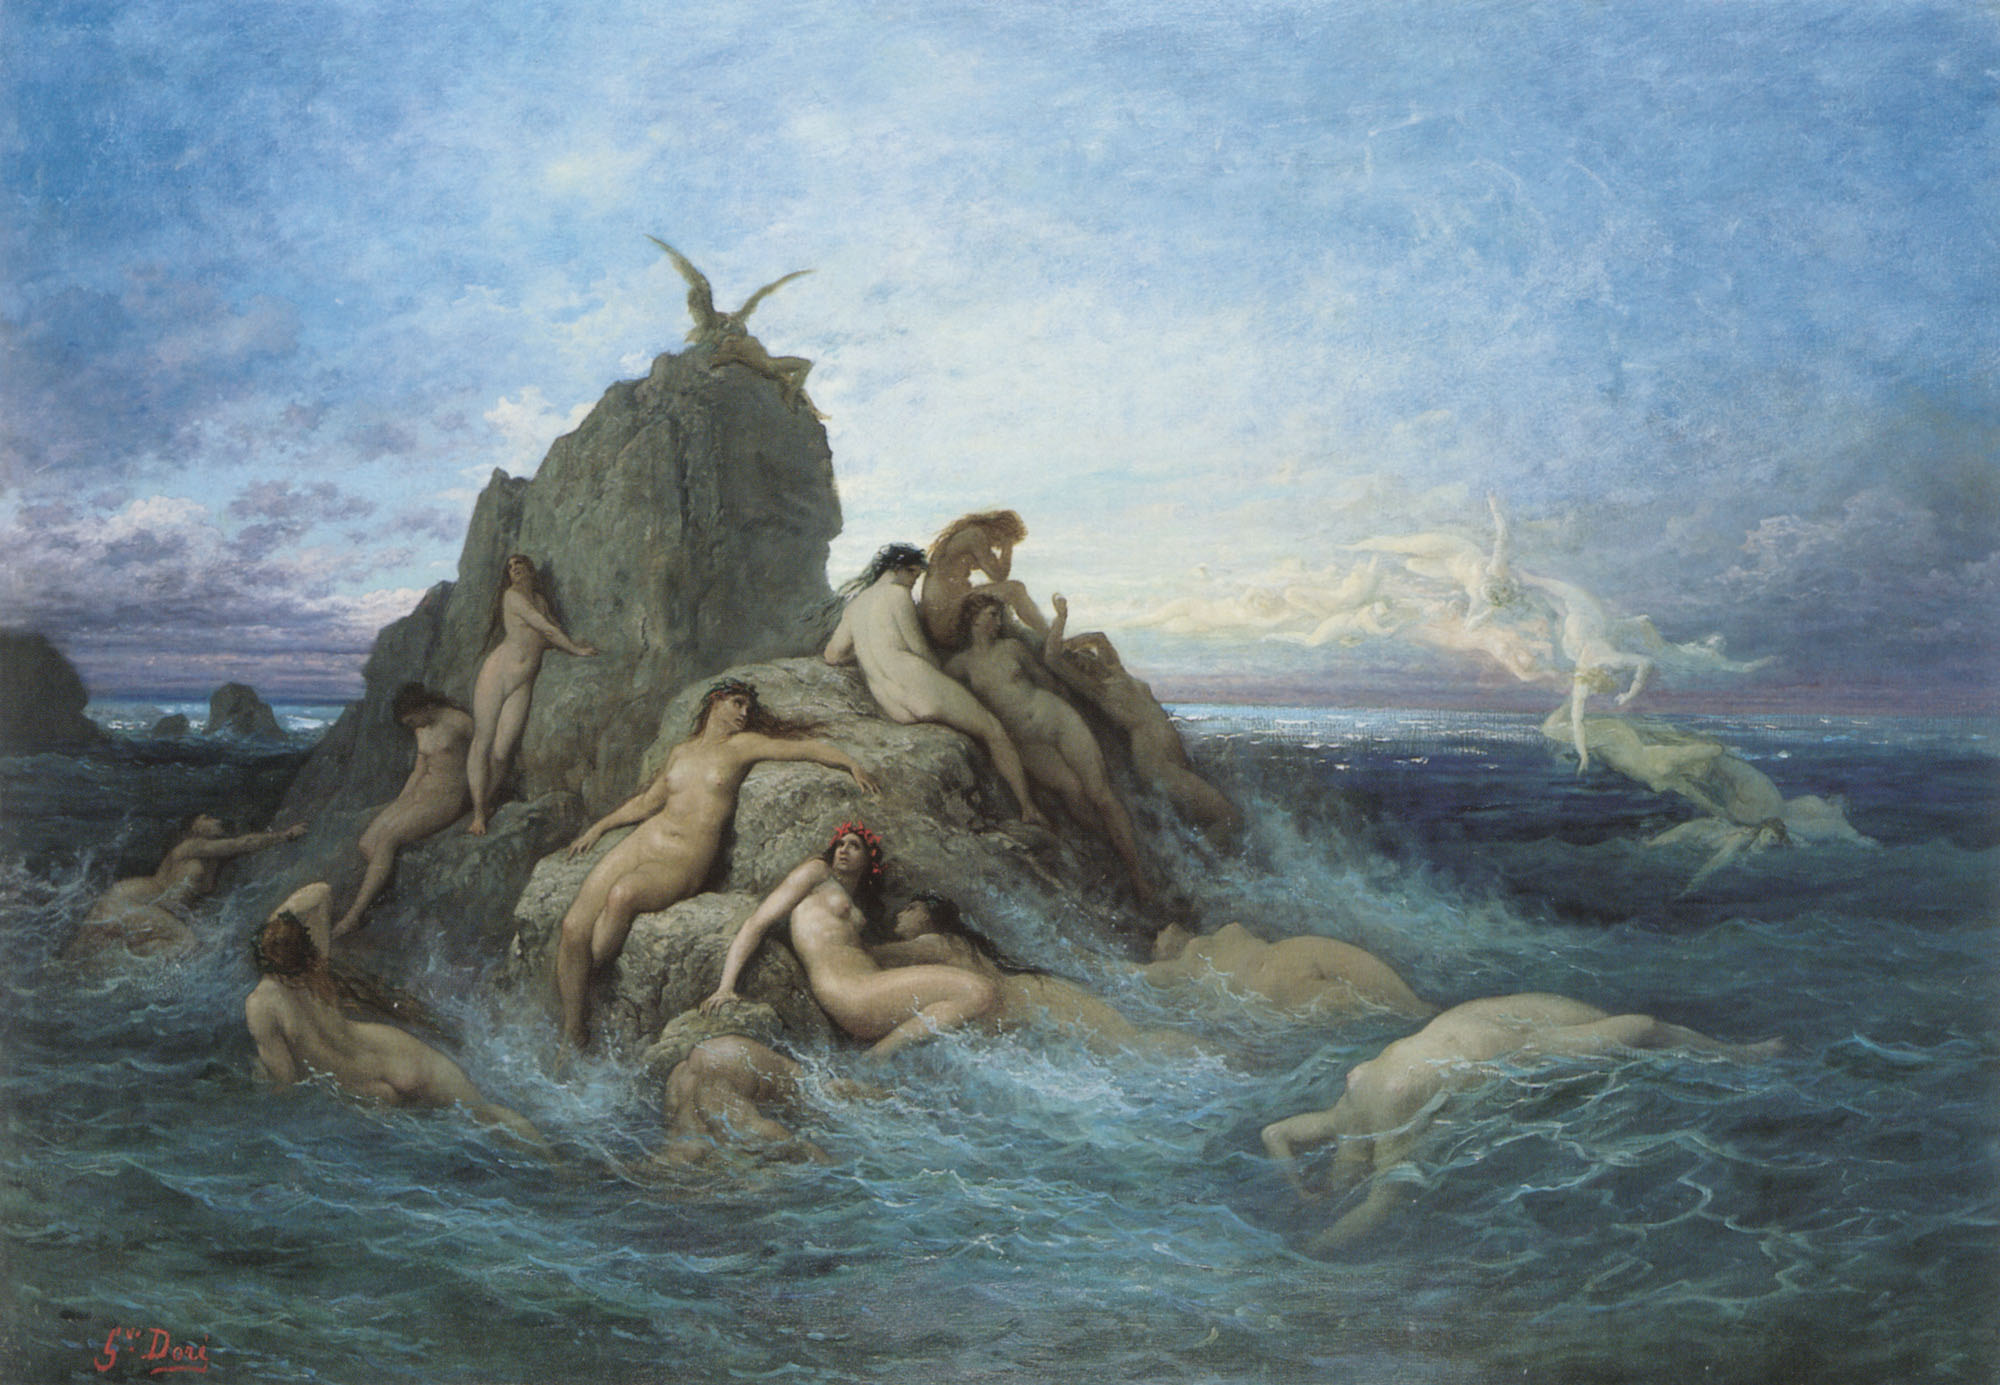 An image by Gustave Dore of Greek water nymphs playing in the sea.